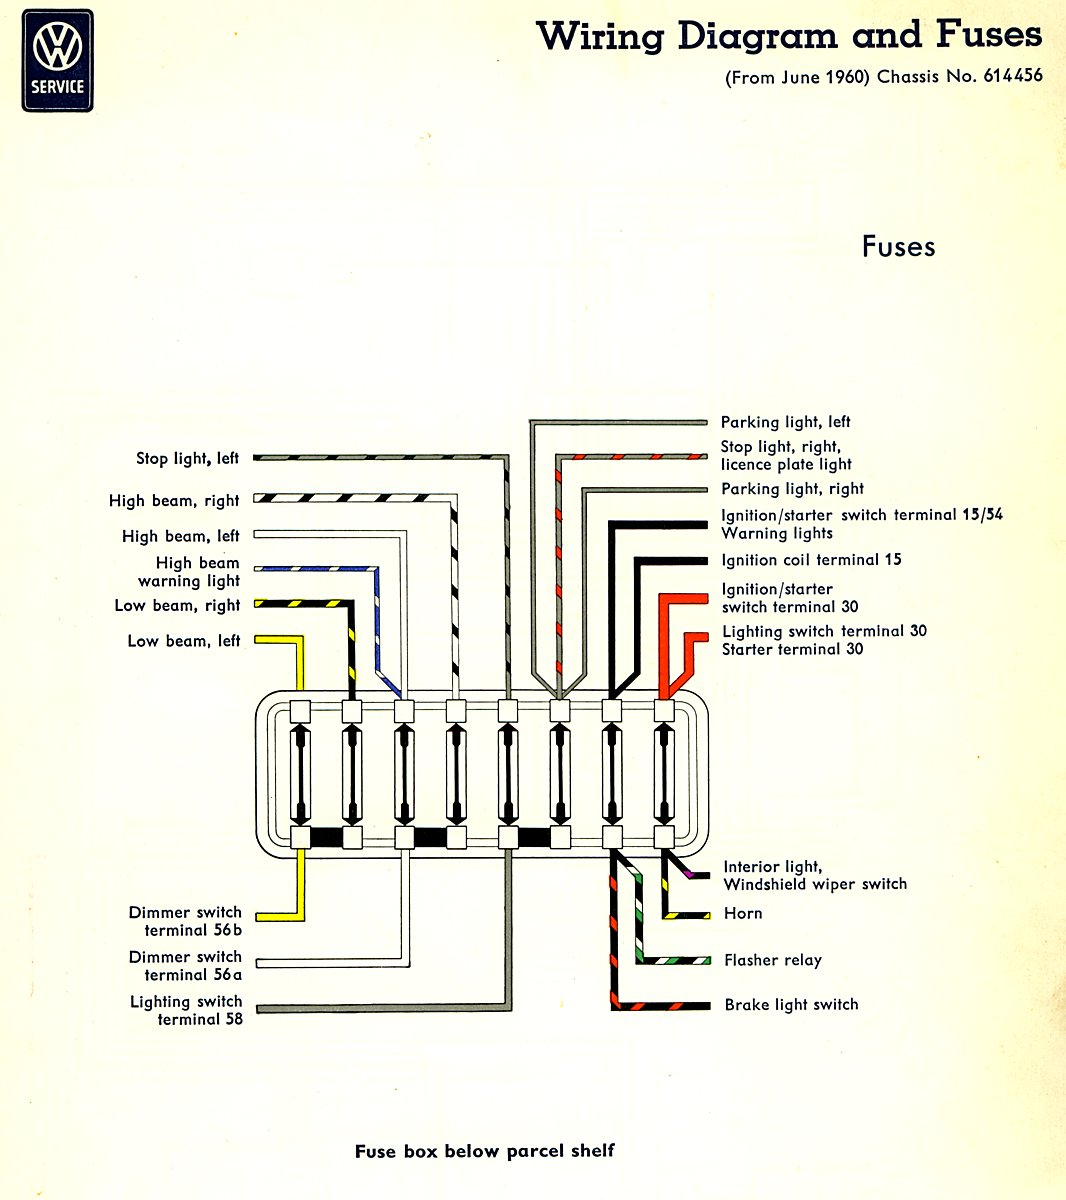 Type 2 Wiring Diagrams 1969 Chevy Starter 1961 Idiot Lights Highlight